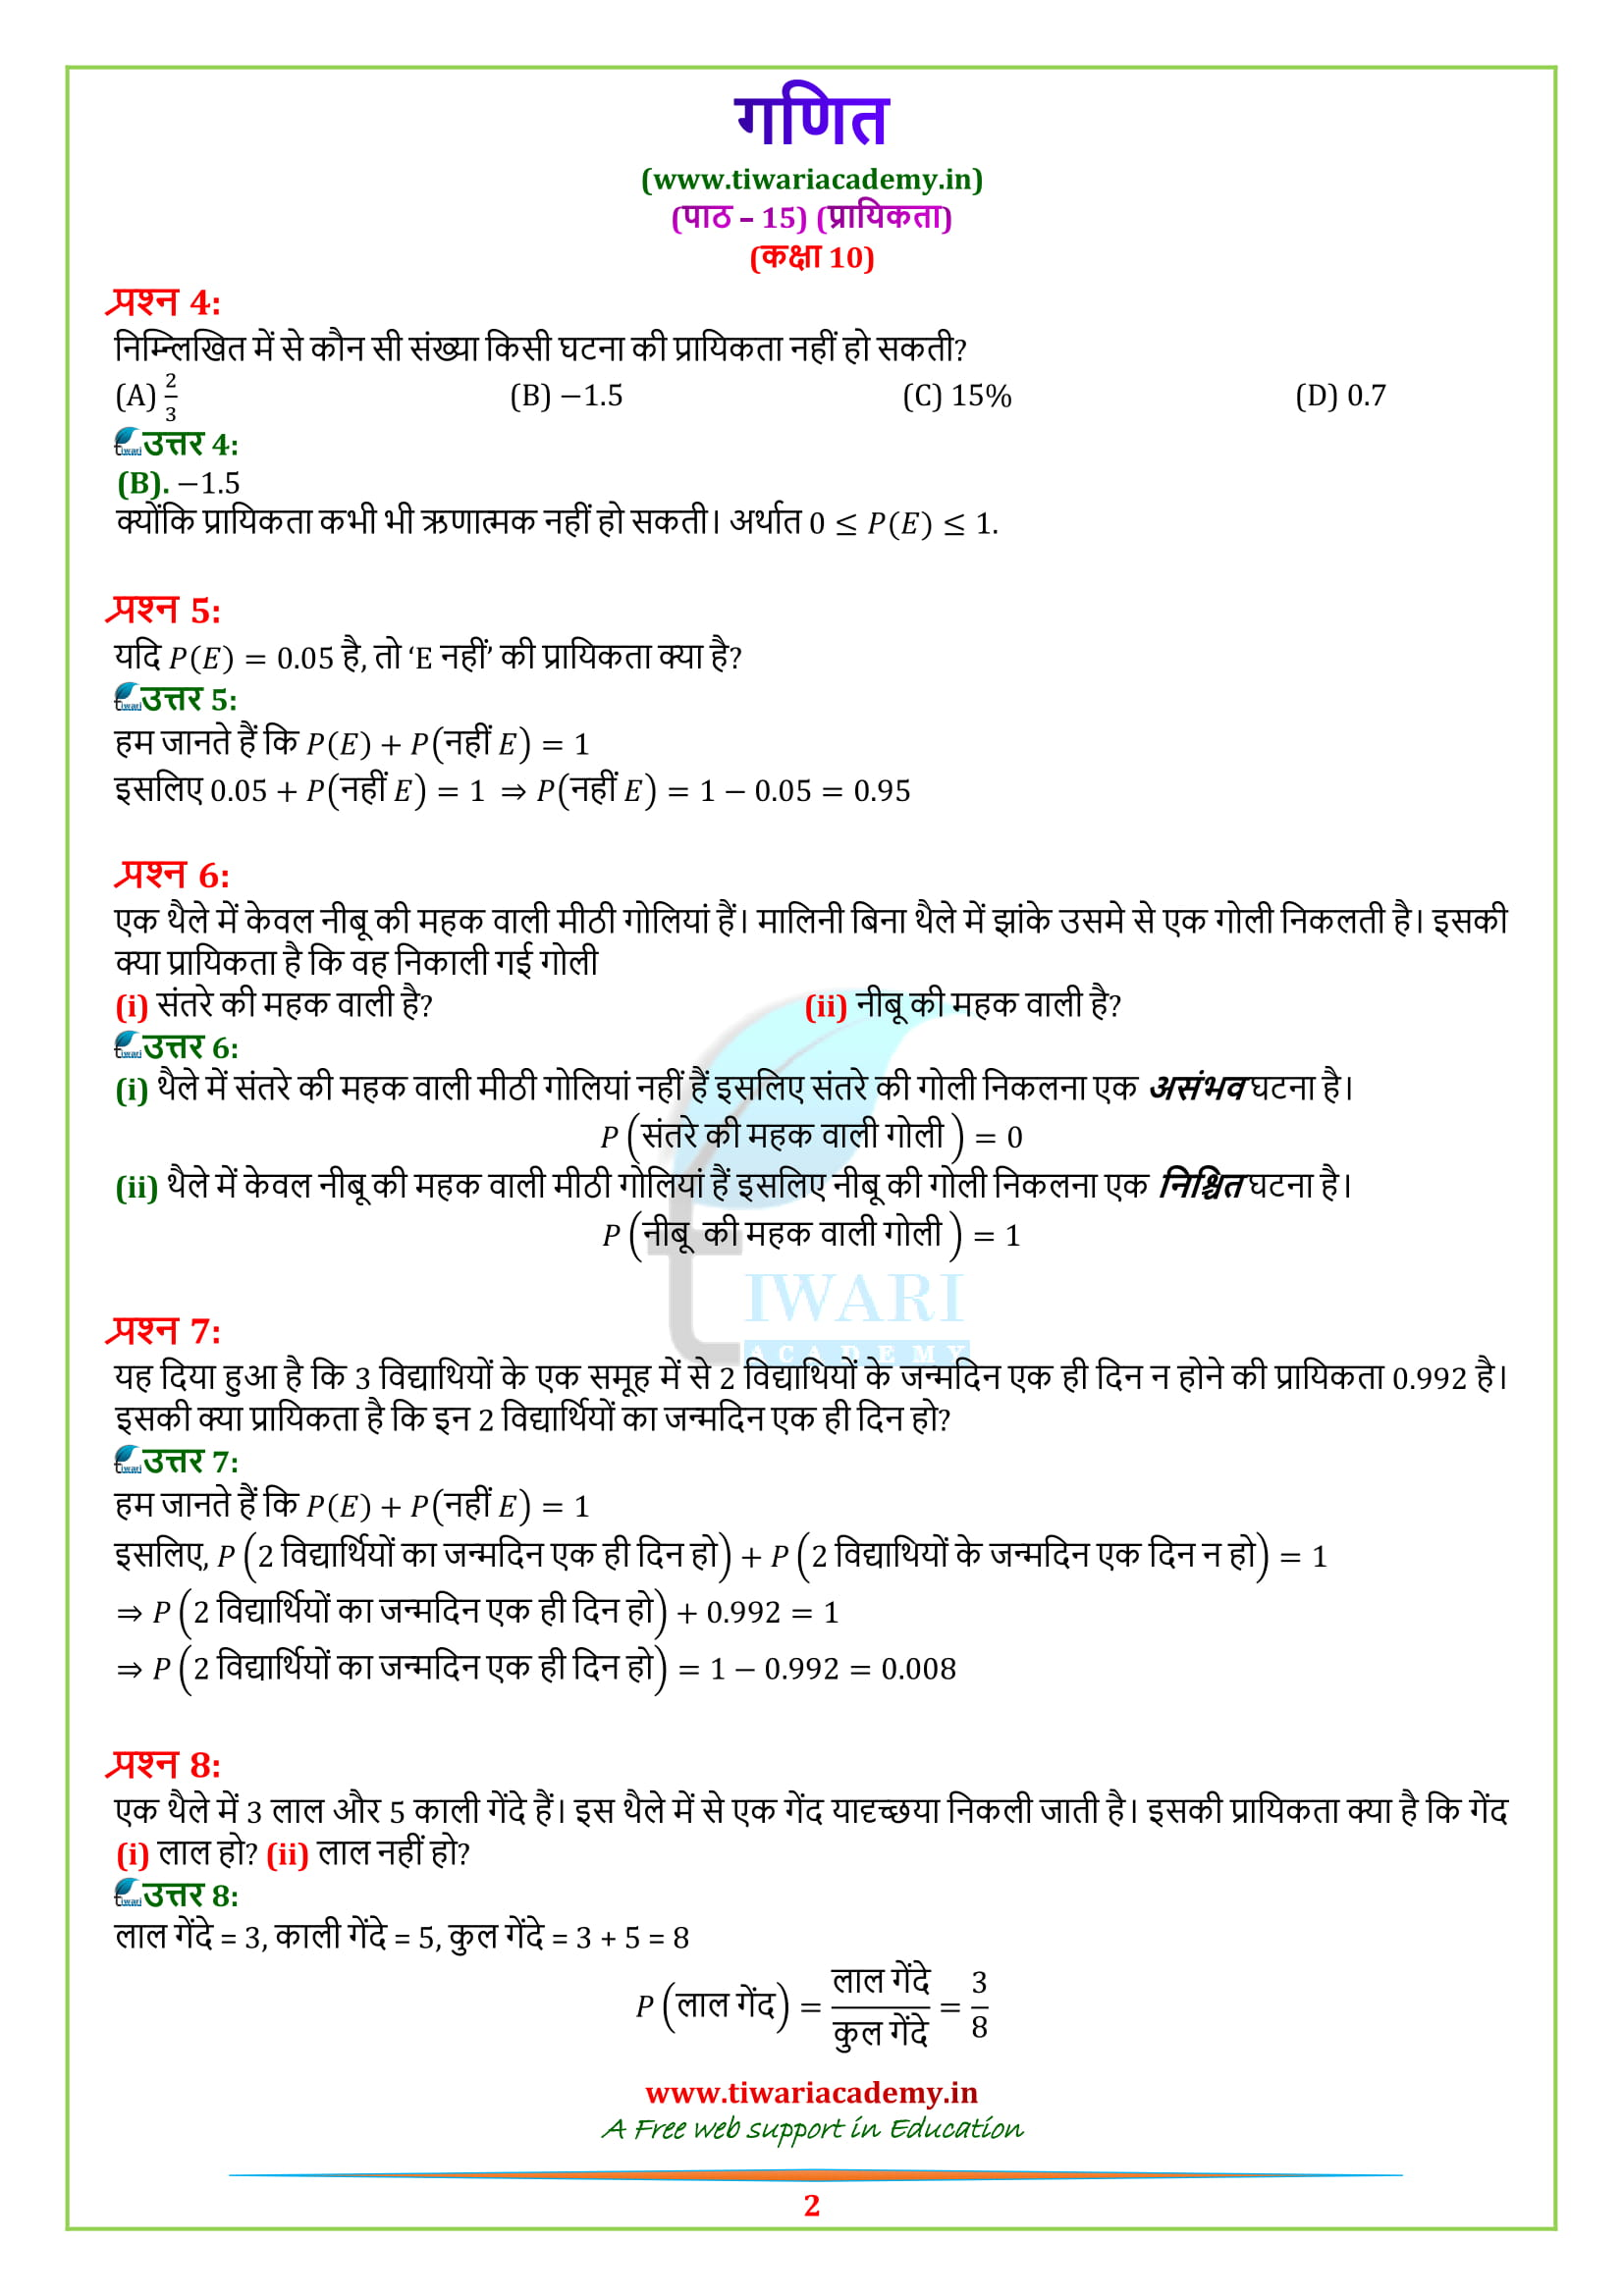 Class 10 Maths Exercise 15.1 solutions all questions guide